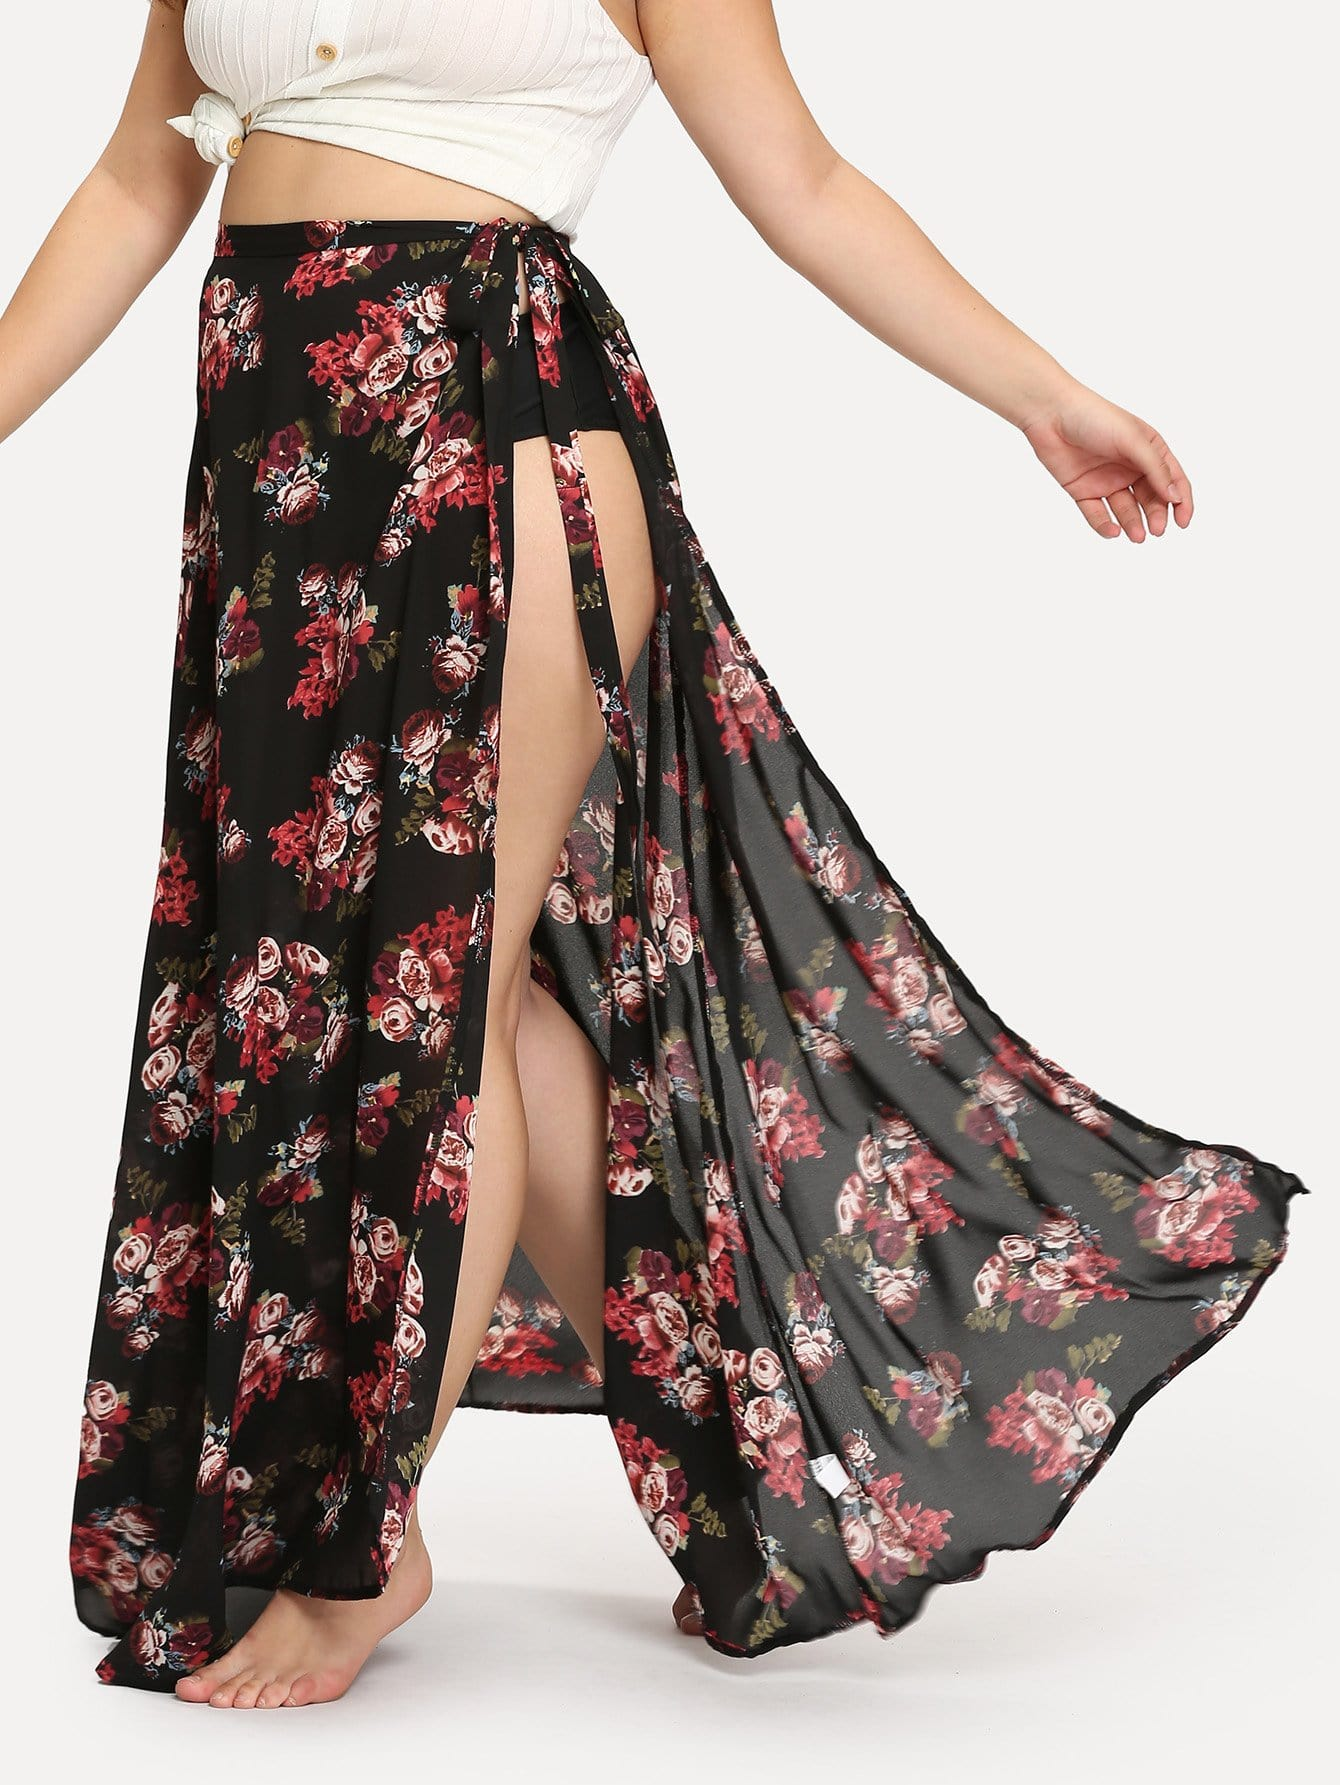 Plus All Over Florals High Slit Skirt ad9764arrl 28 soic